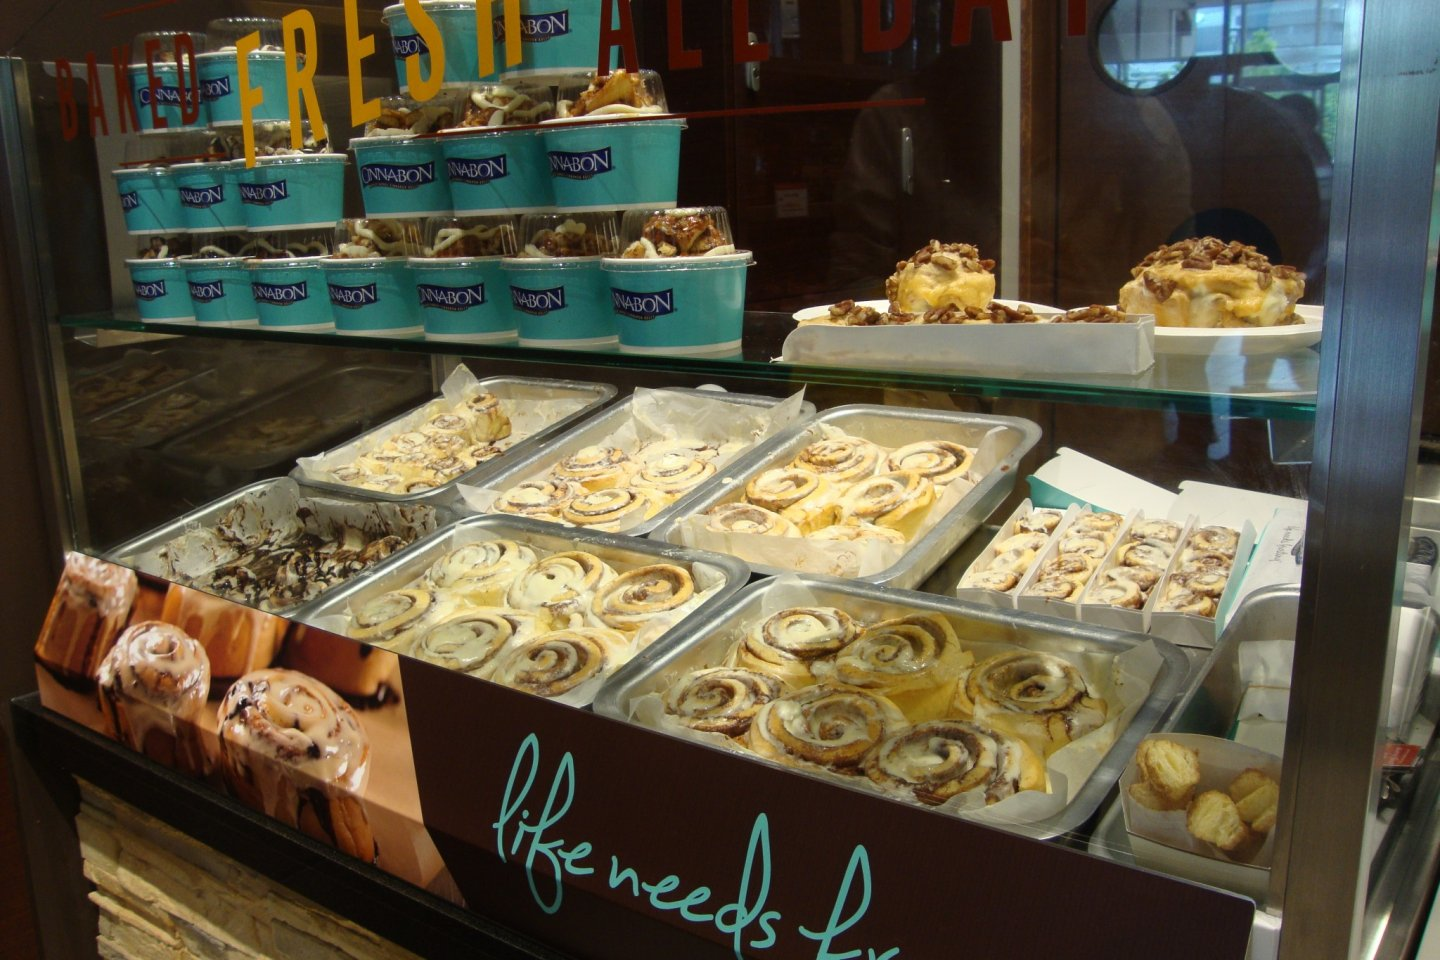 The variety of Cinnabon treats available for purchase